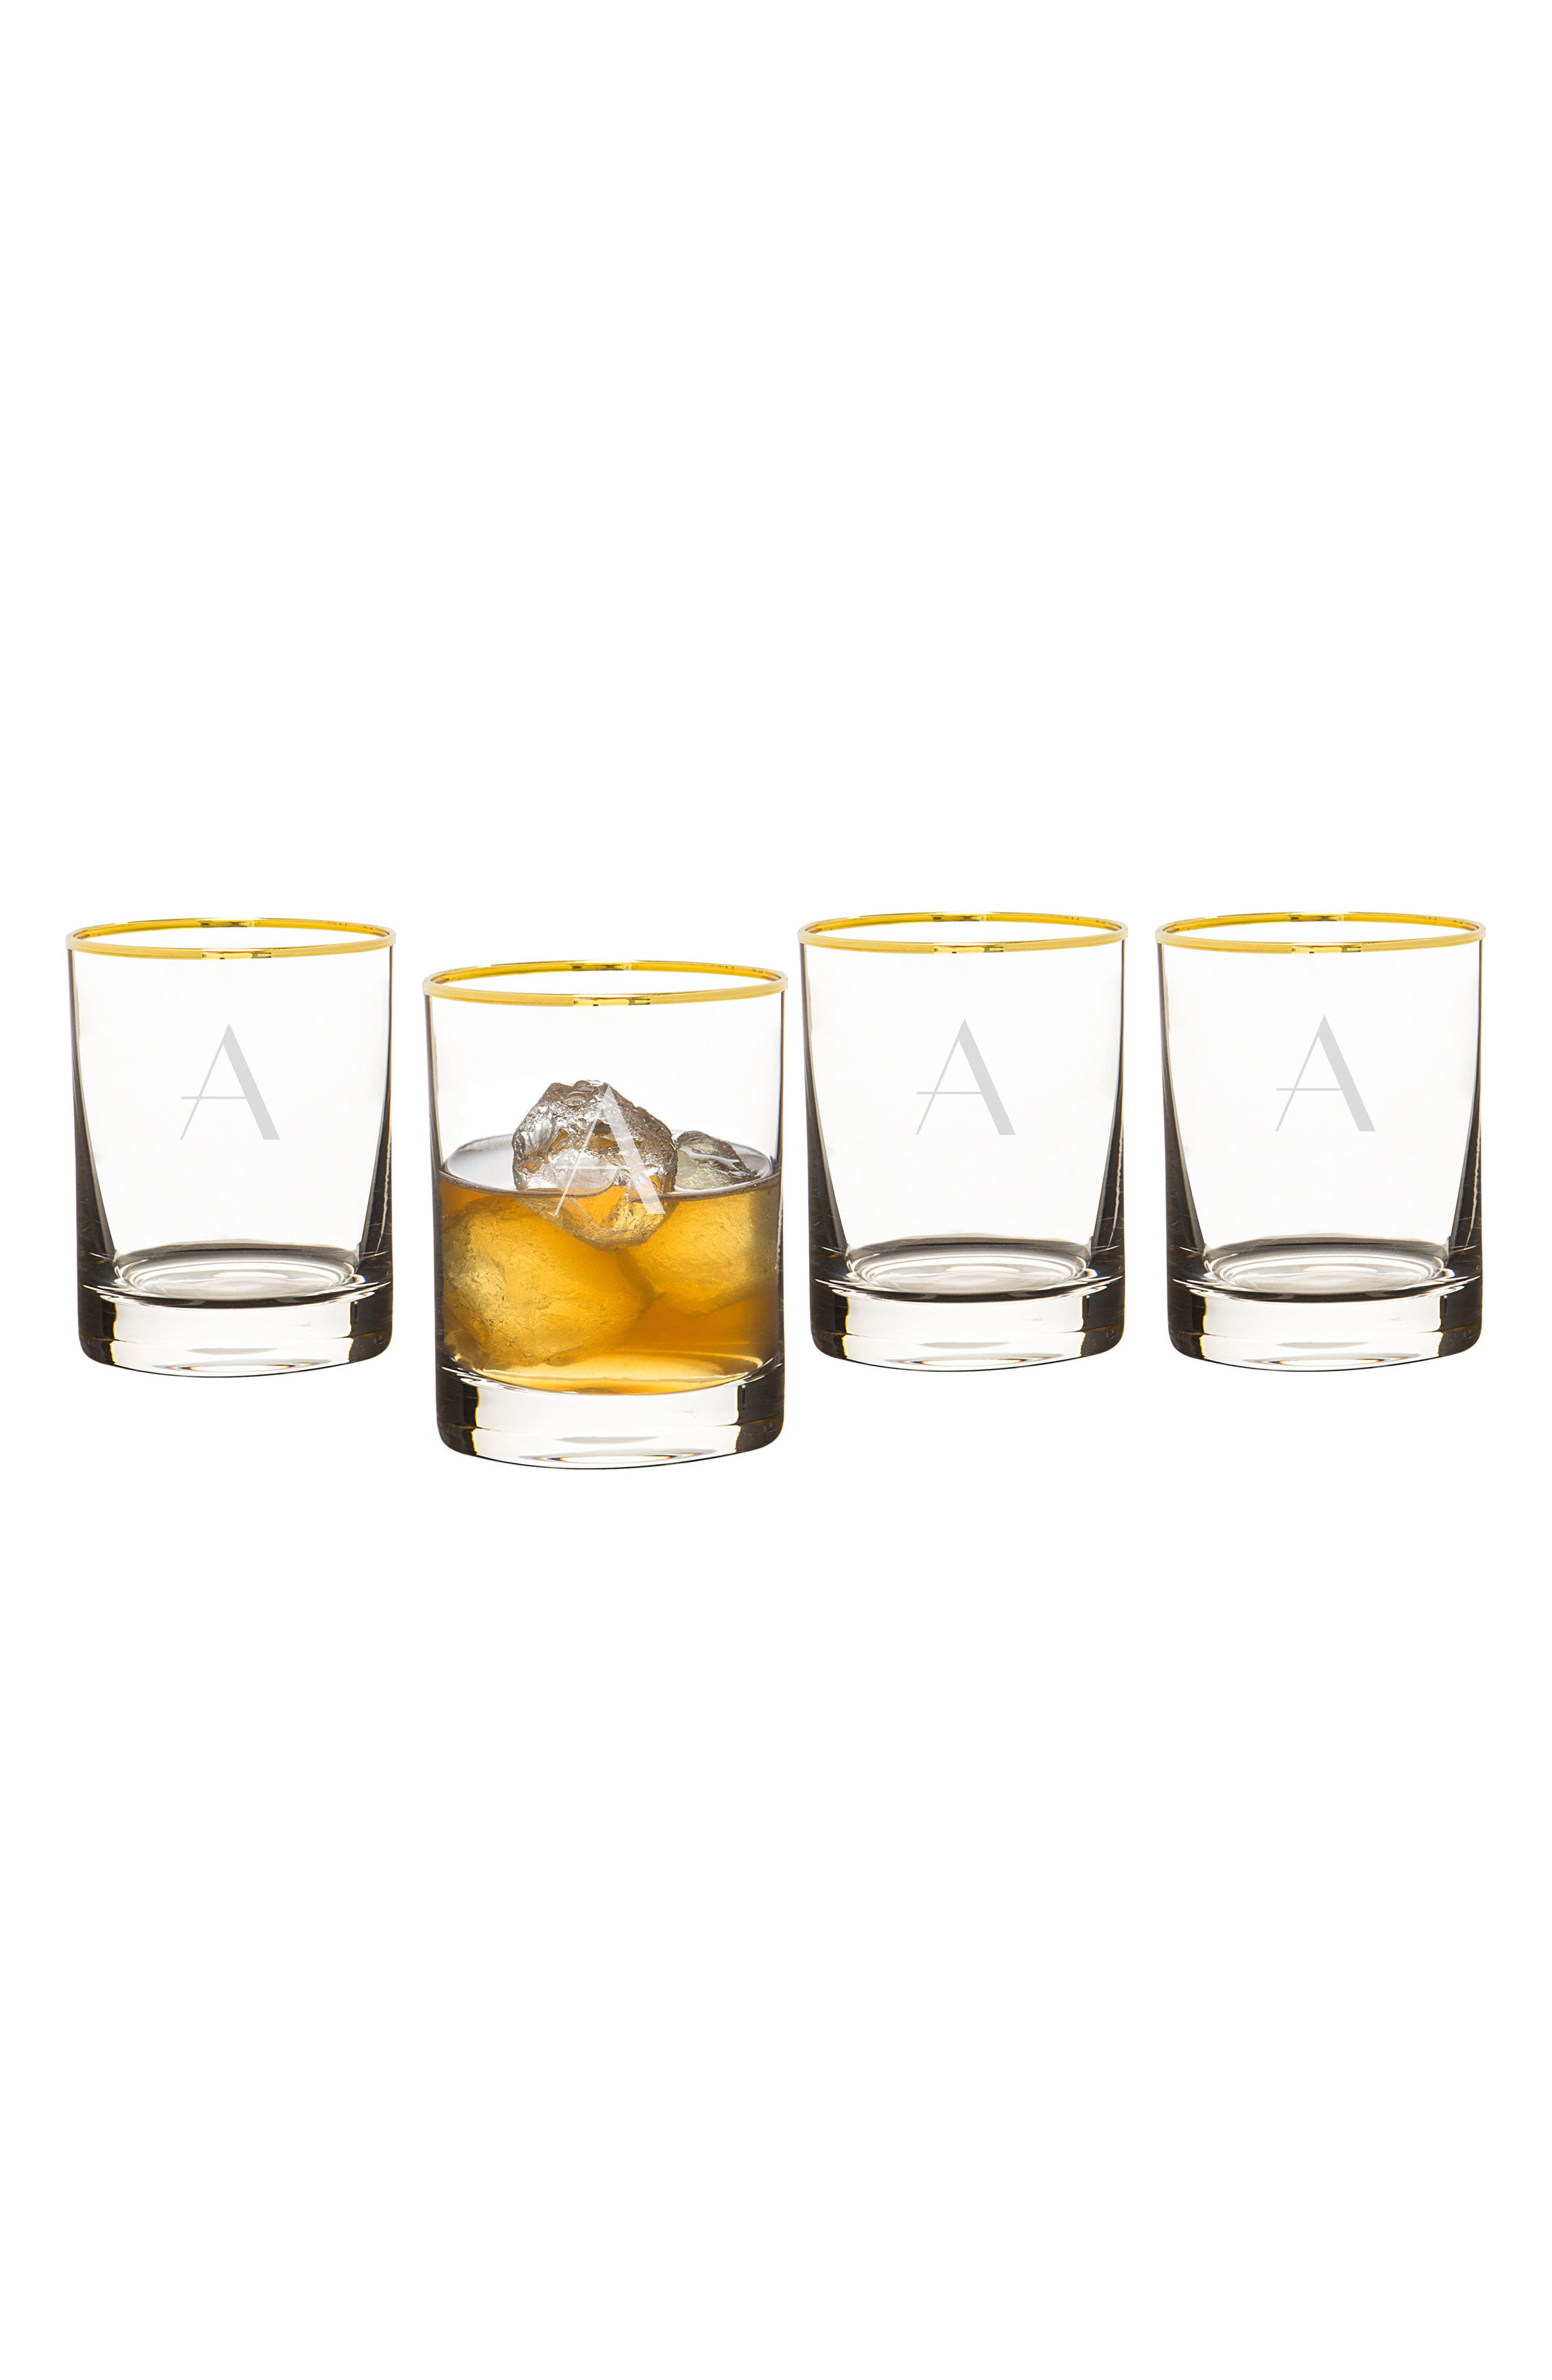 Monogram Set of 4 Double Old Fashioned Glasses,                             Main thumbnail 2, color,